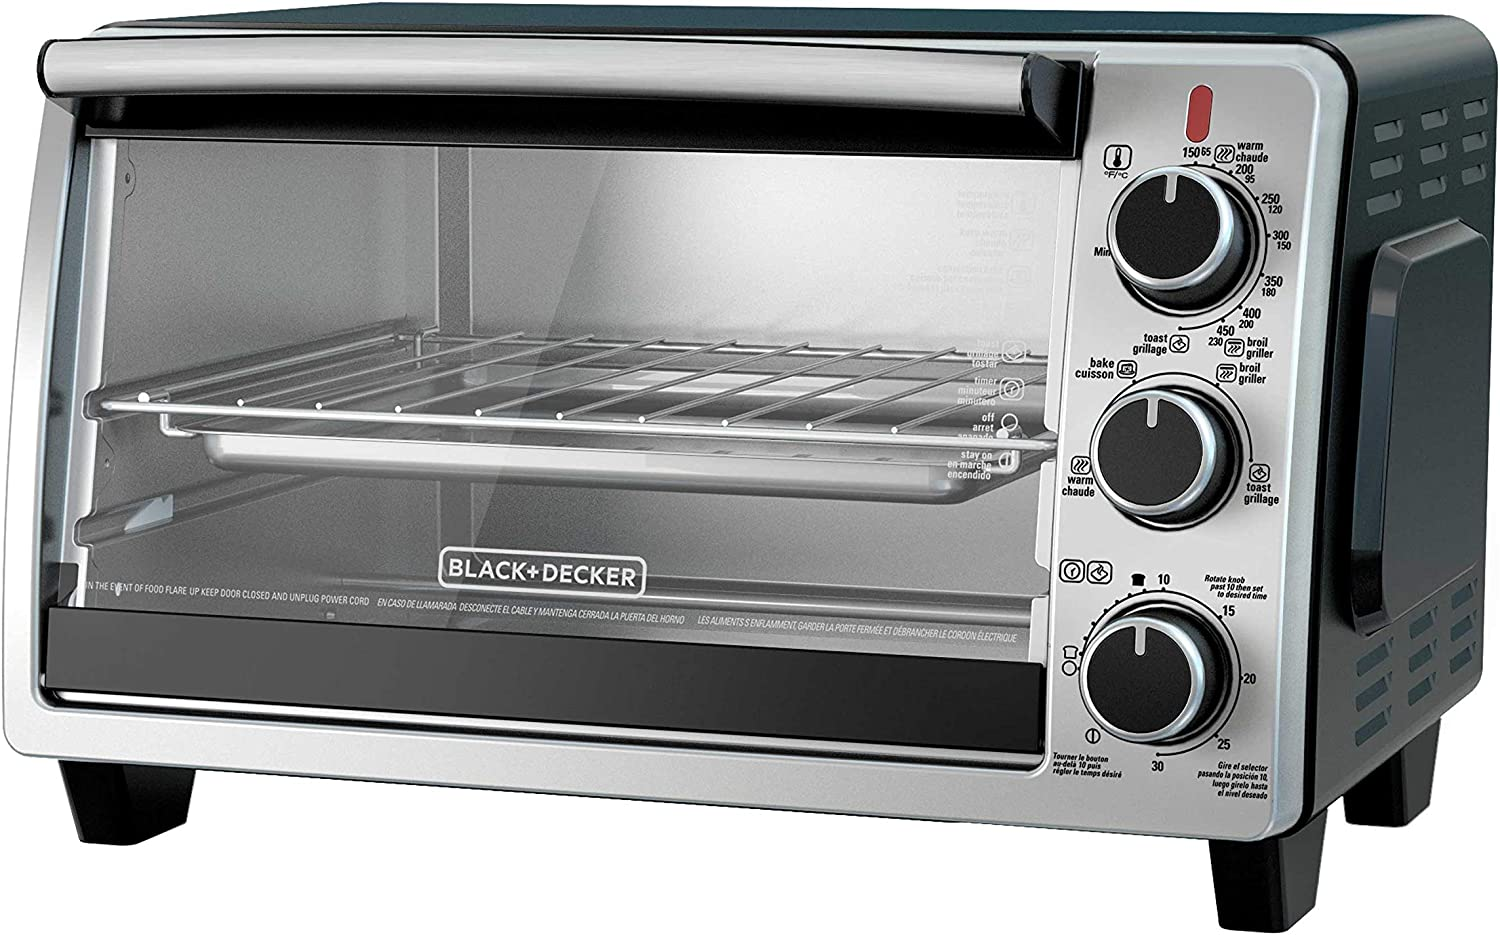 BLACK+DECKER TO1950SBD 6-Slice Convection Countertop Toaster Oven, Includes Bake Pan, Broil Rack & Toasting Rack, Stainless Steel Black Convection Toaster Oven